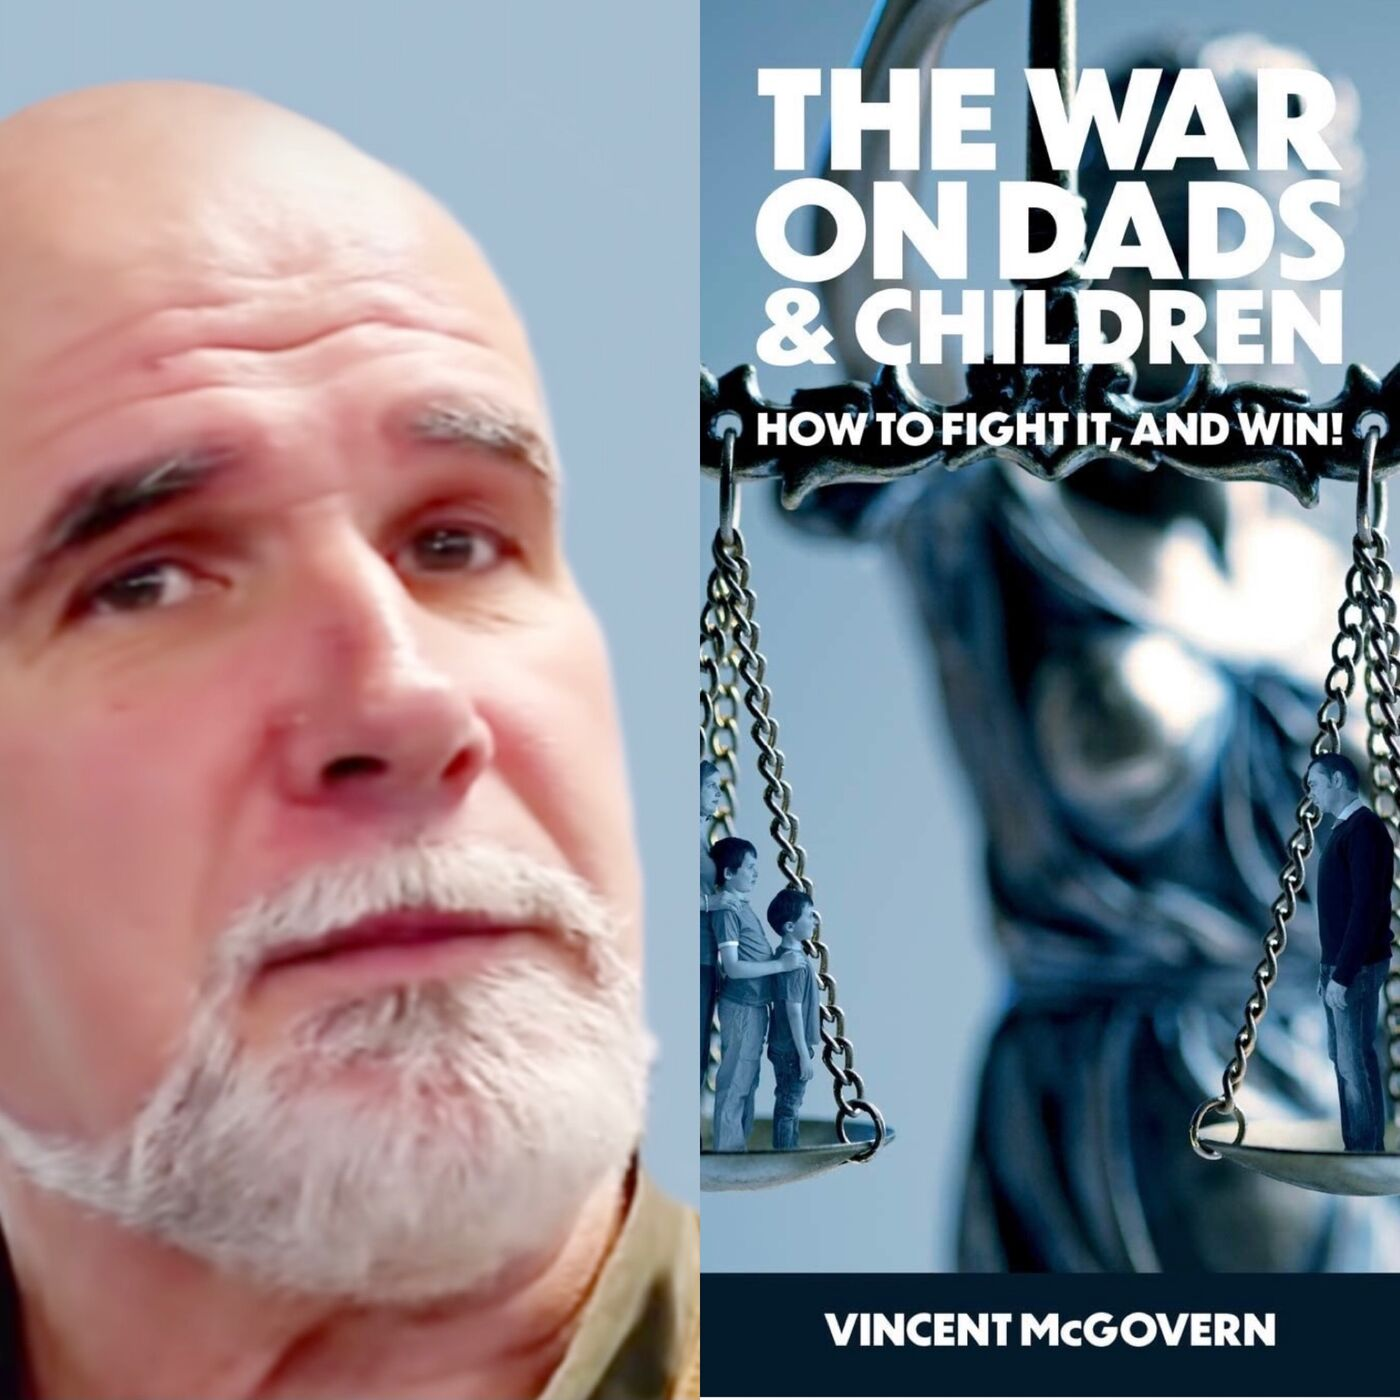 Vincent McGovern, Author, Discusses How Shared Parenting Is Not What You Think And Is Not Happening In The United Kingdom